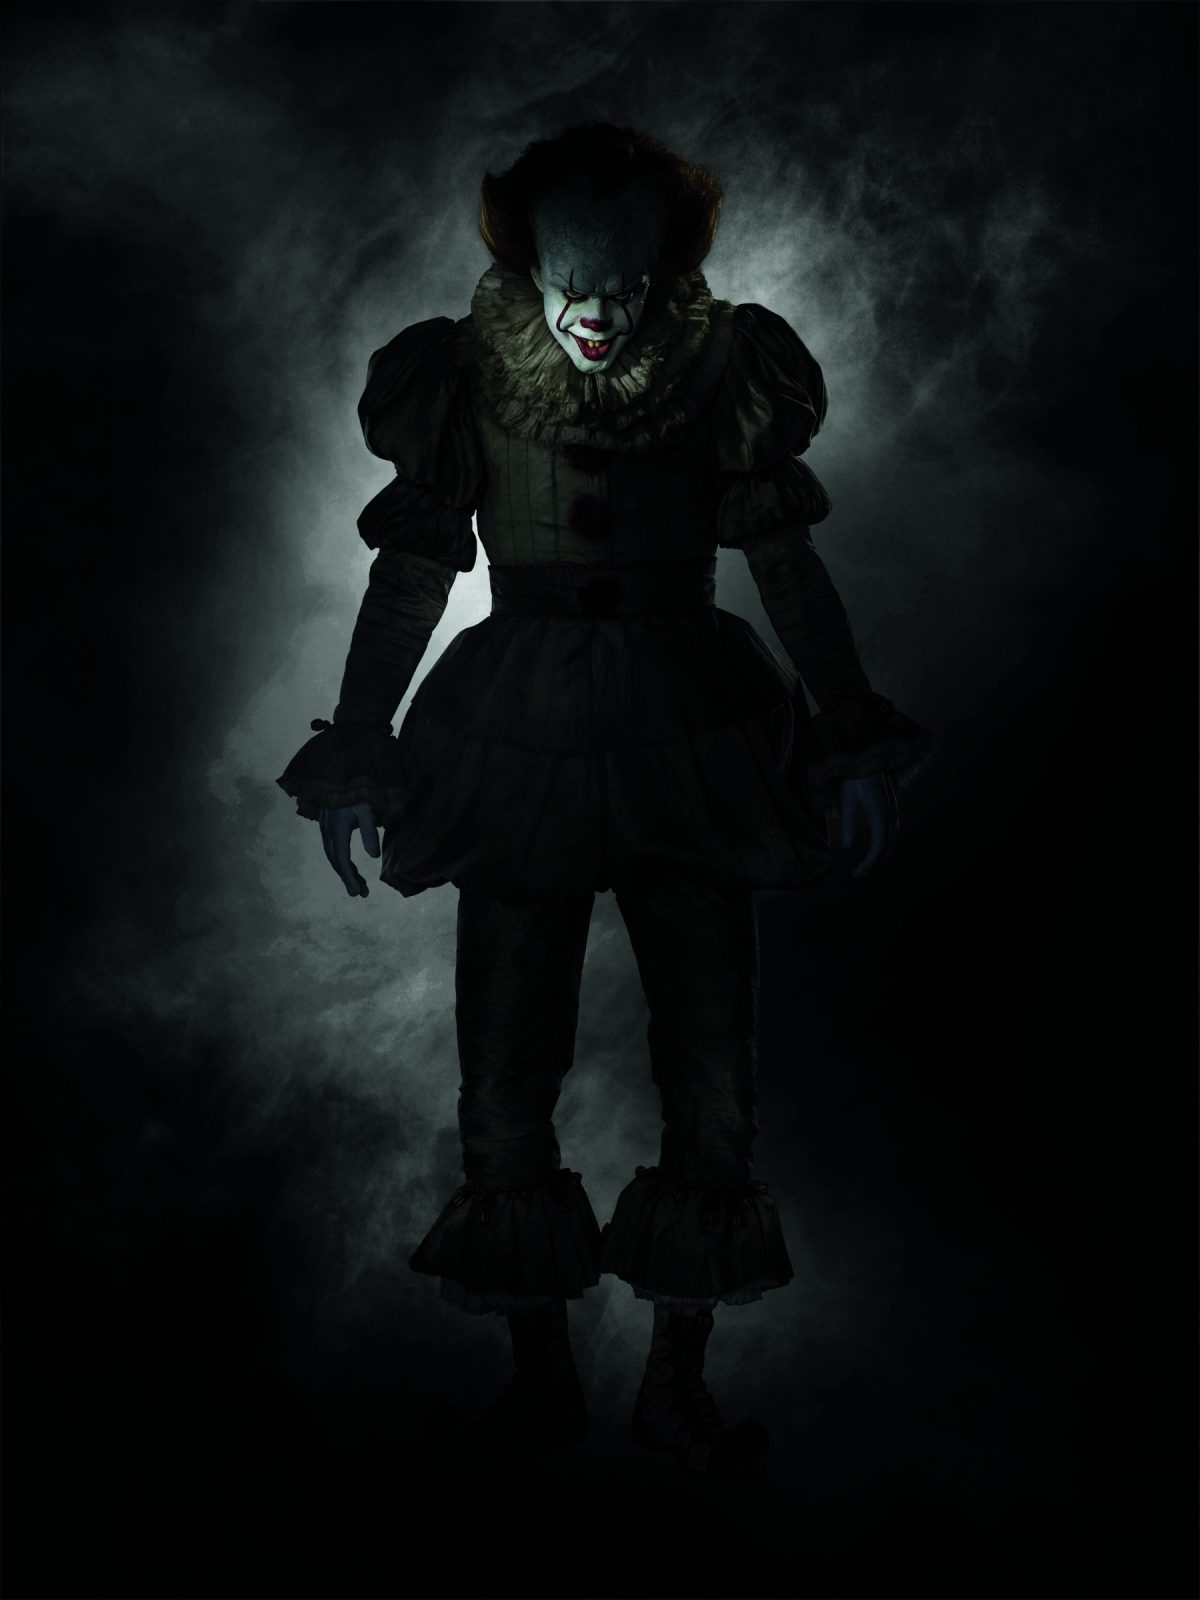 To celebrate the release of 'IT' in cinemas September 8th, Warner Bros. Pictures and Blazing Minds offer you the chance to win officialmerchandise.